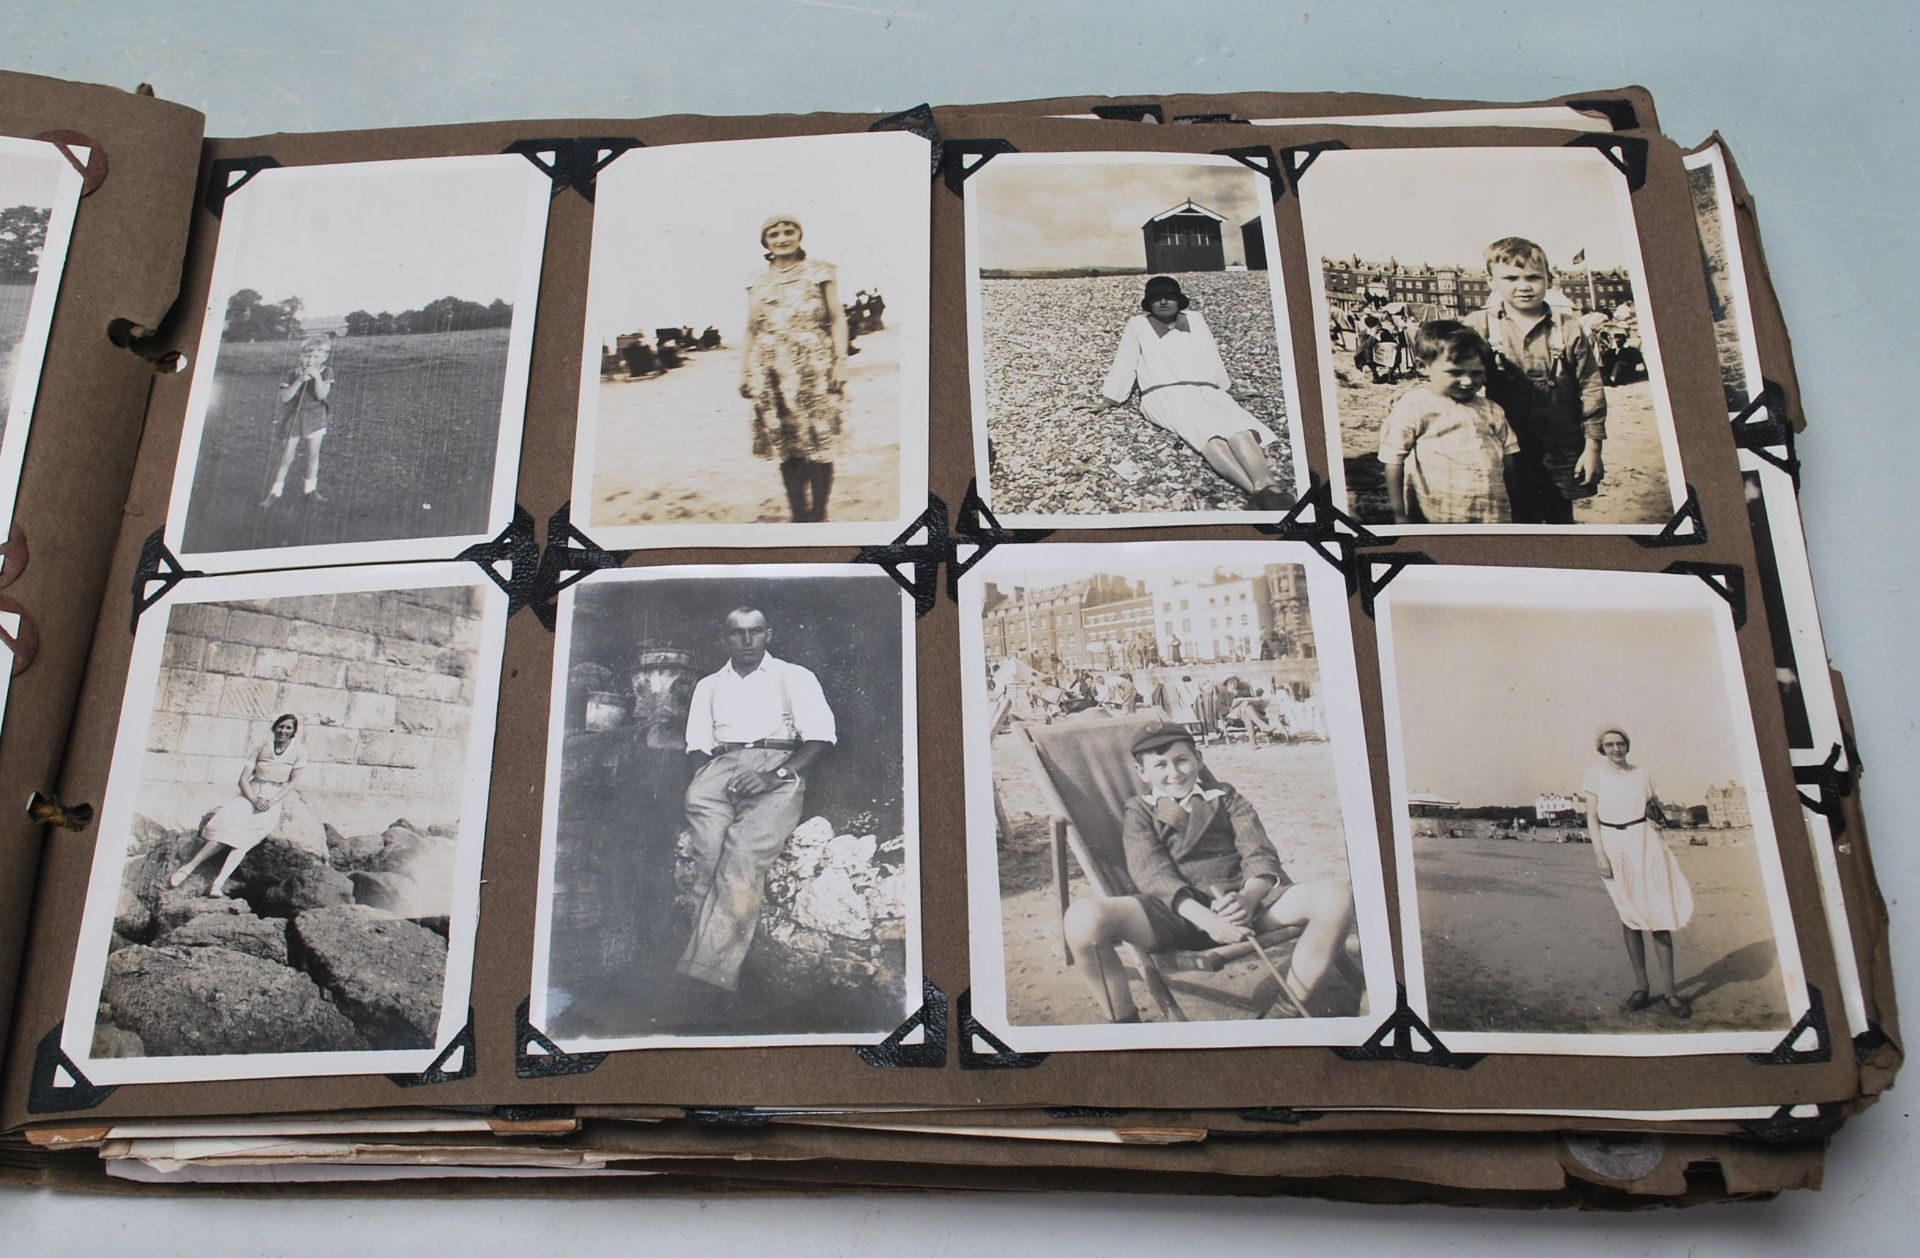 EARLY 20TH CENTURY BLACK AND WHITE PHOTO ALBUM - Image 5 of 14